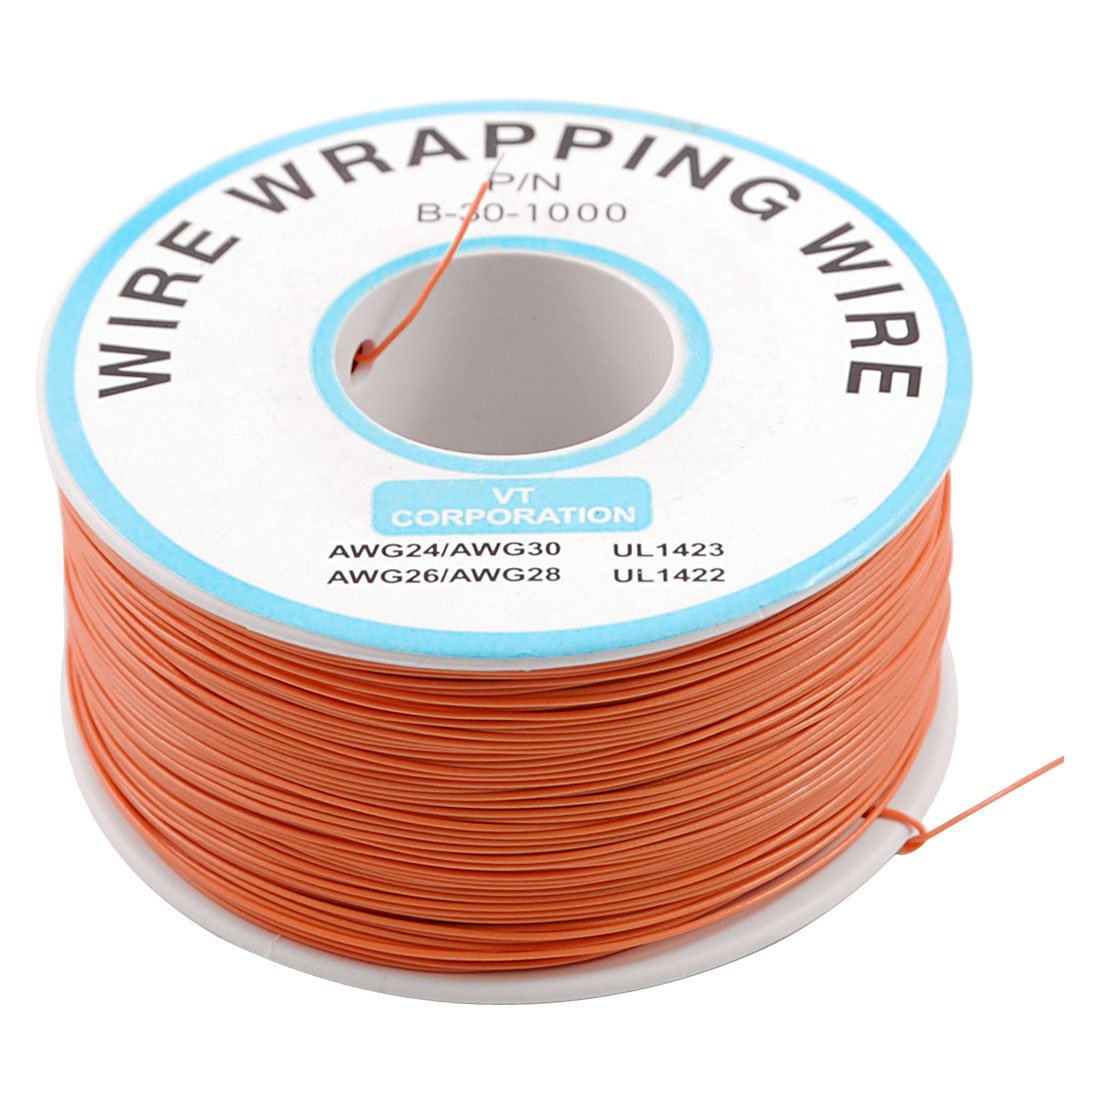 PCB Solder Orange Flexible 0.5mm Outside Dia 30AWG Wire Wrapping ...